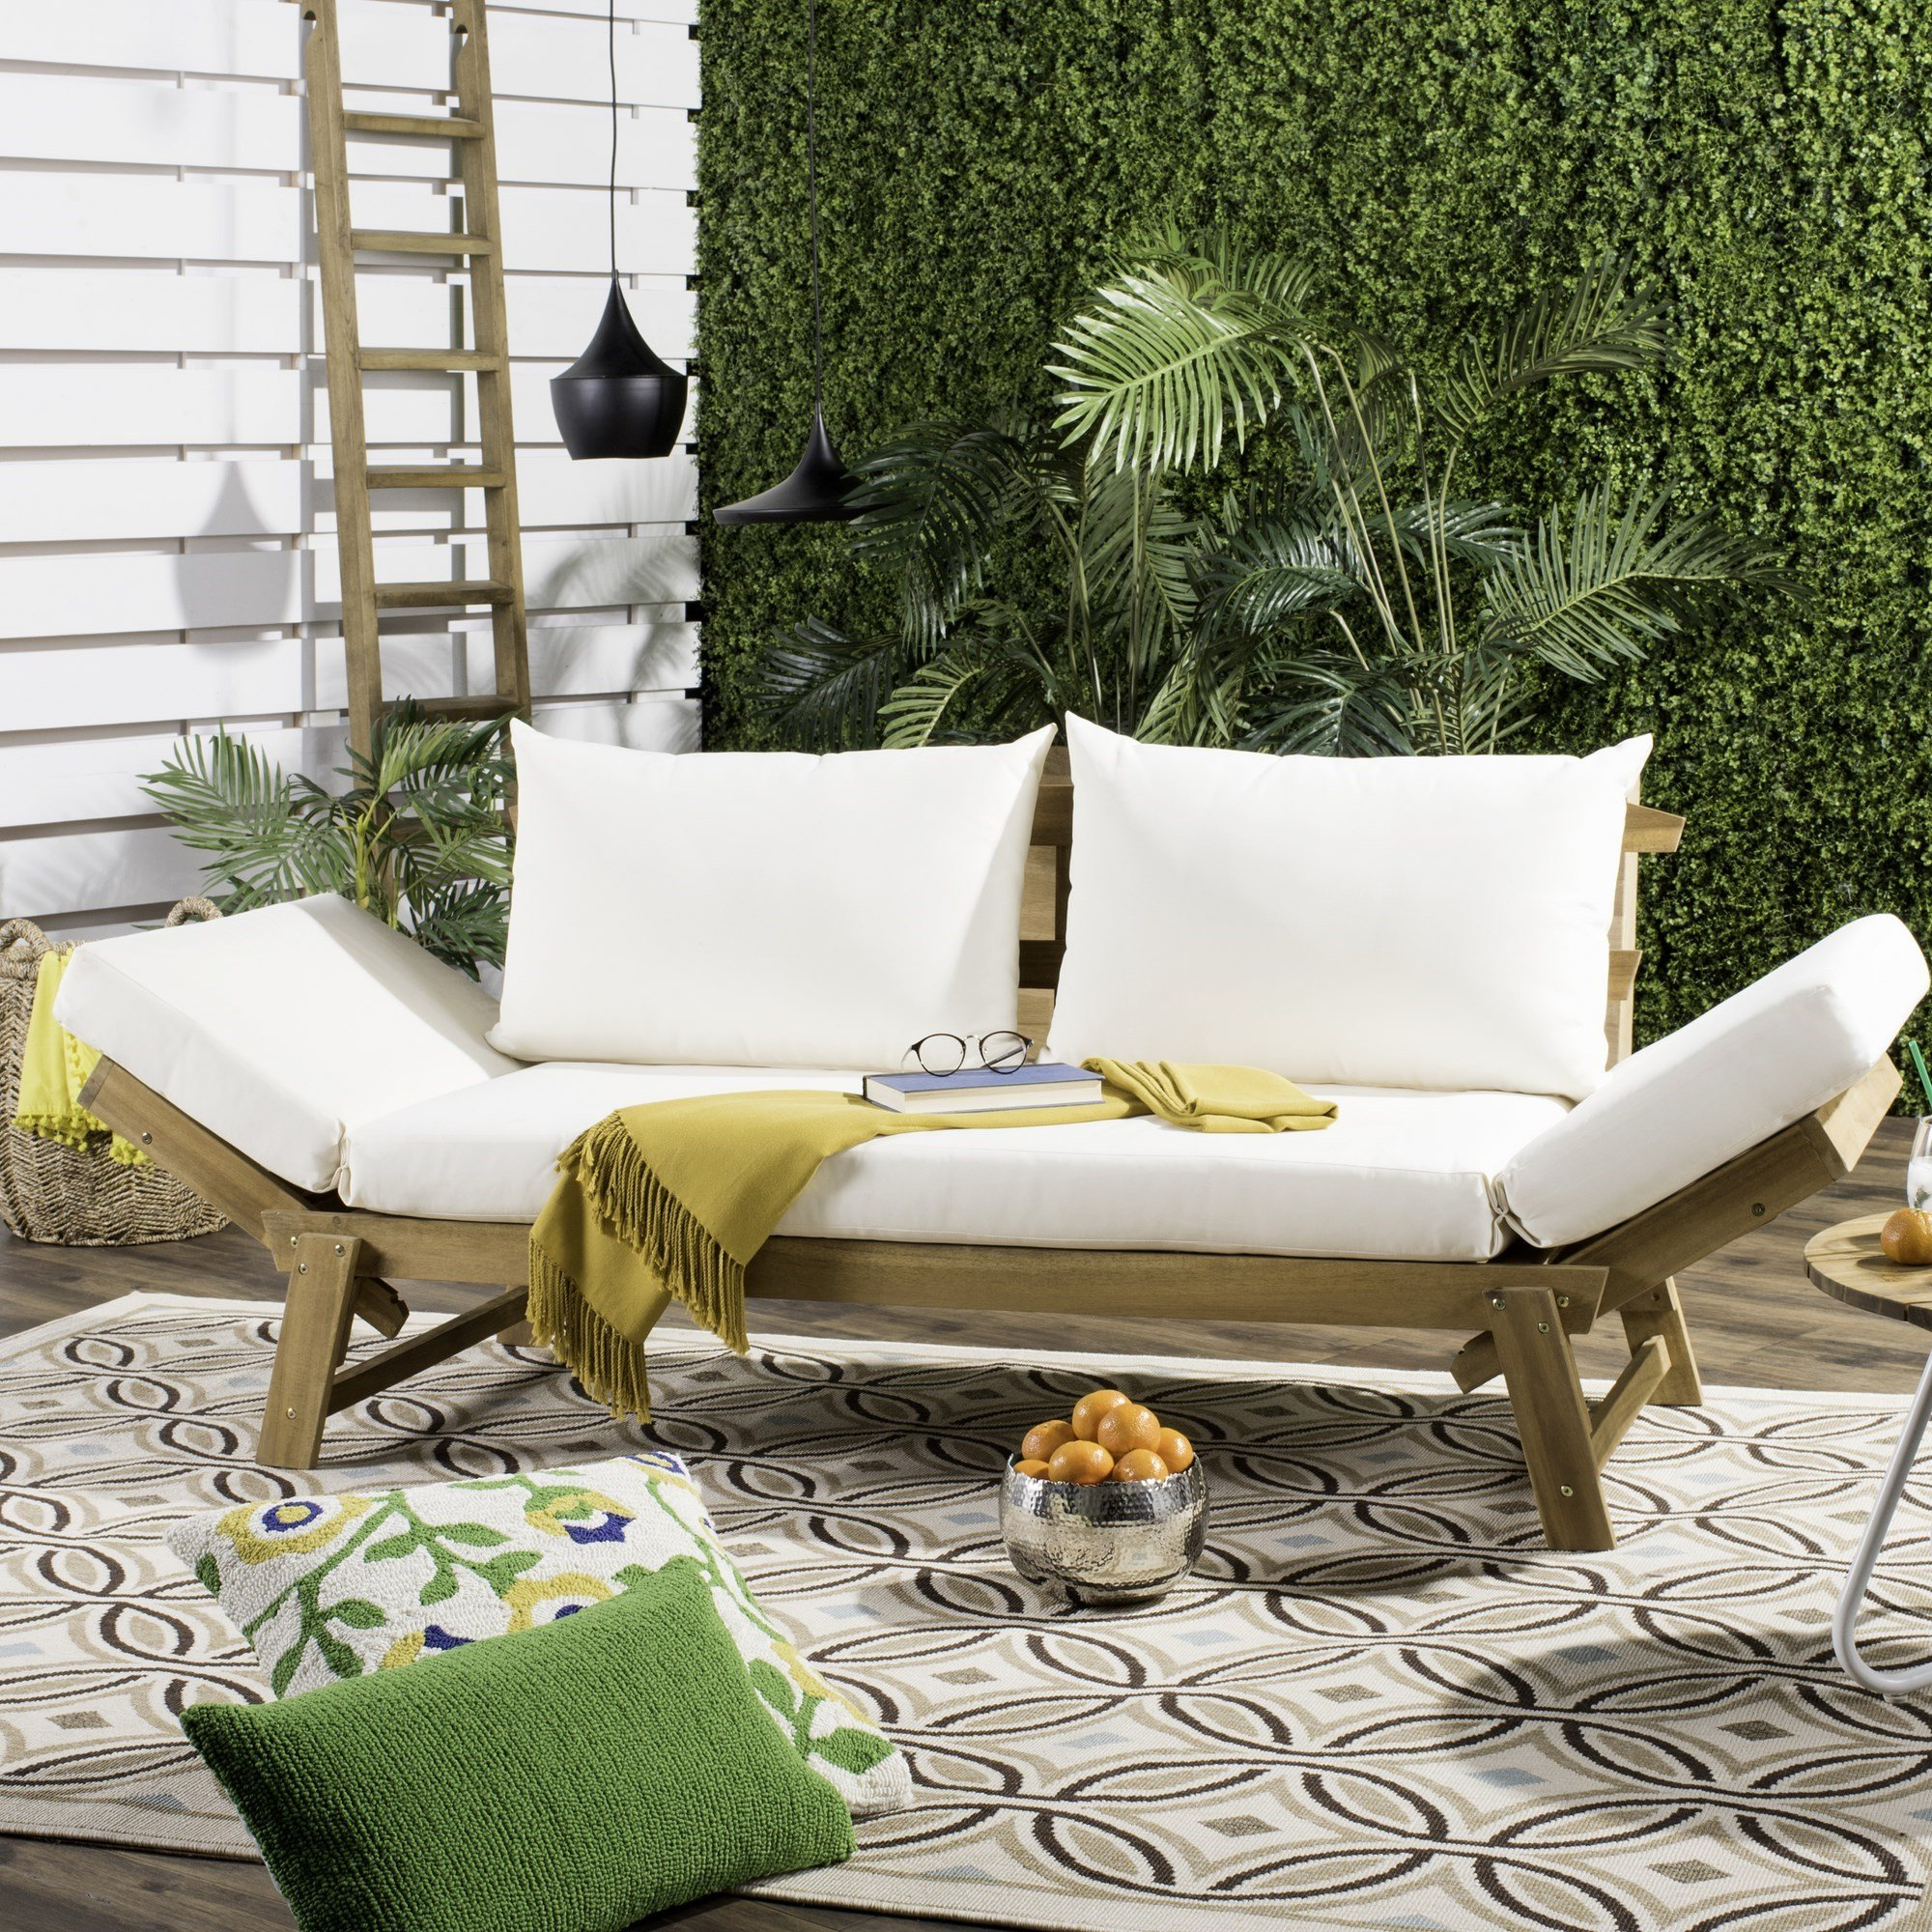 Best And Newest Birch Lane™ Heritage Beal Patio Daybed With Cushions With Regard To Beal Patio Daybeds With Cushions (Gallery 2 of 25)